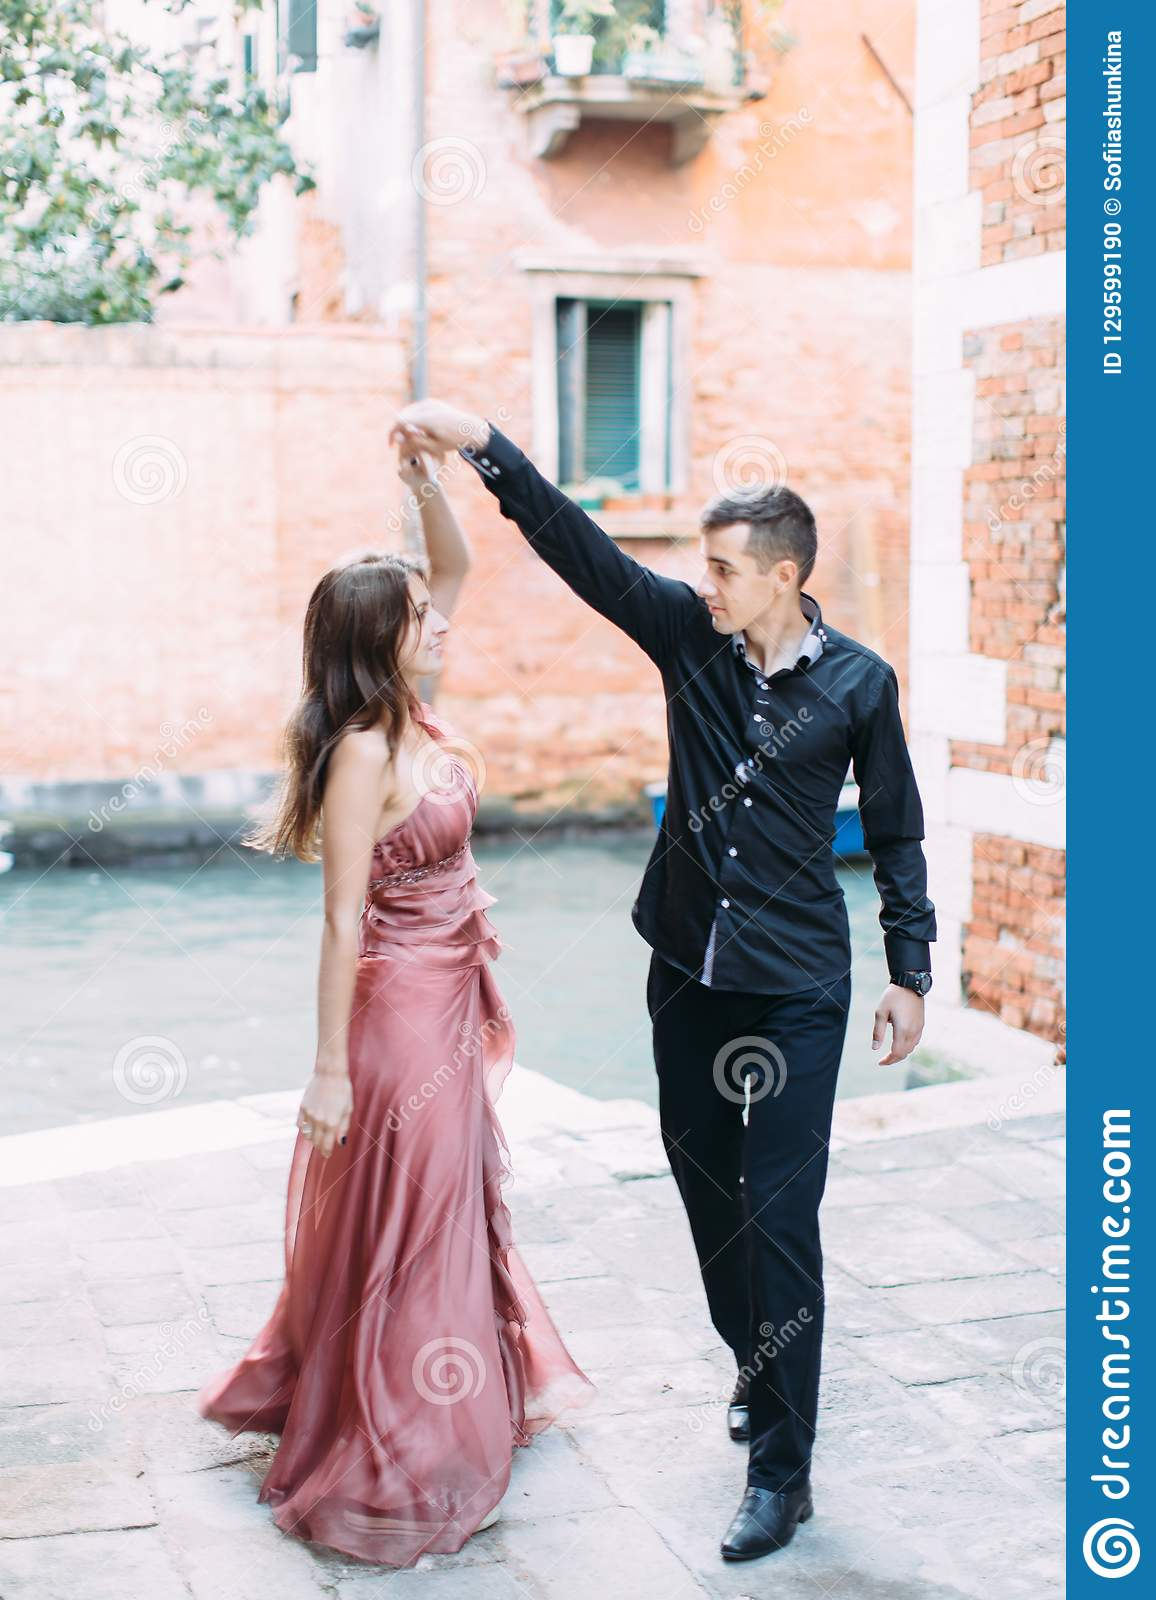 Romantic couple in Venice dancing and happy together. Italy, Europe.